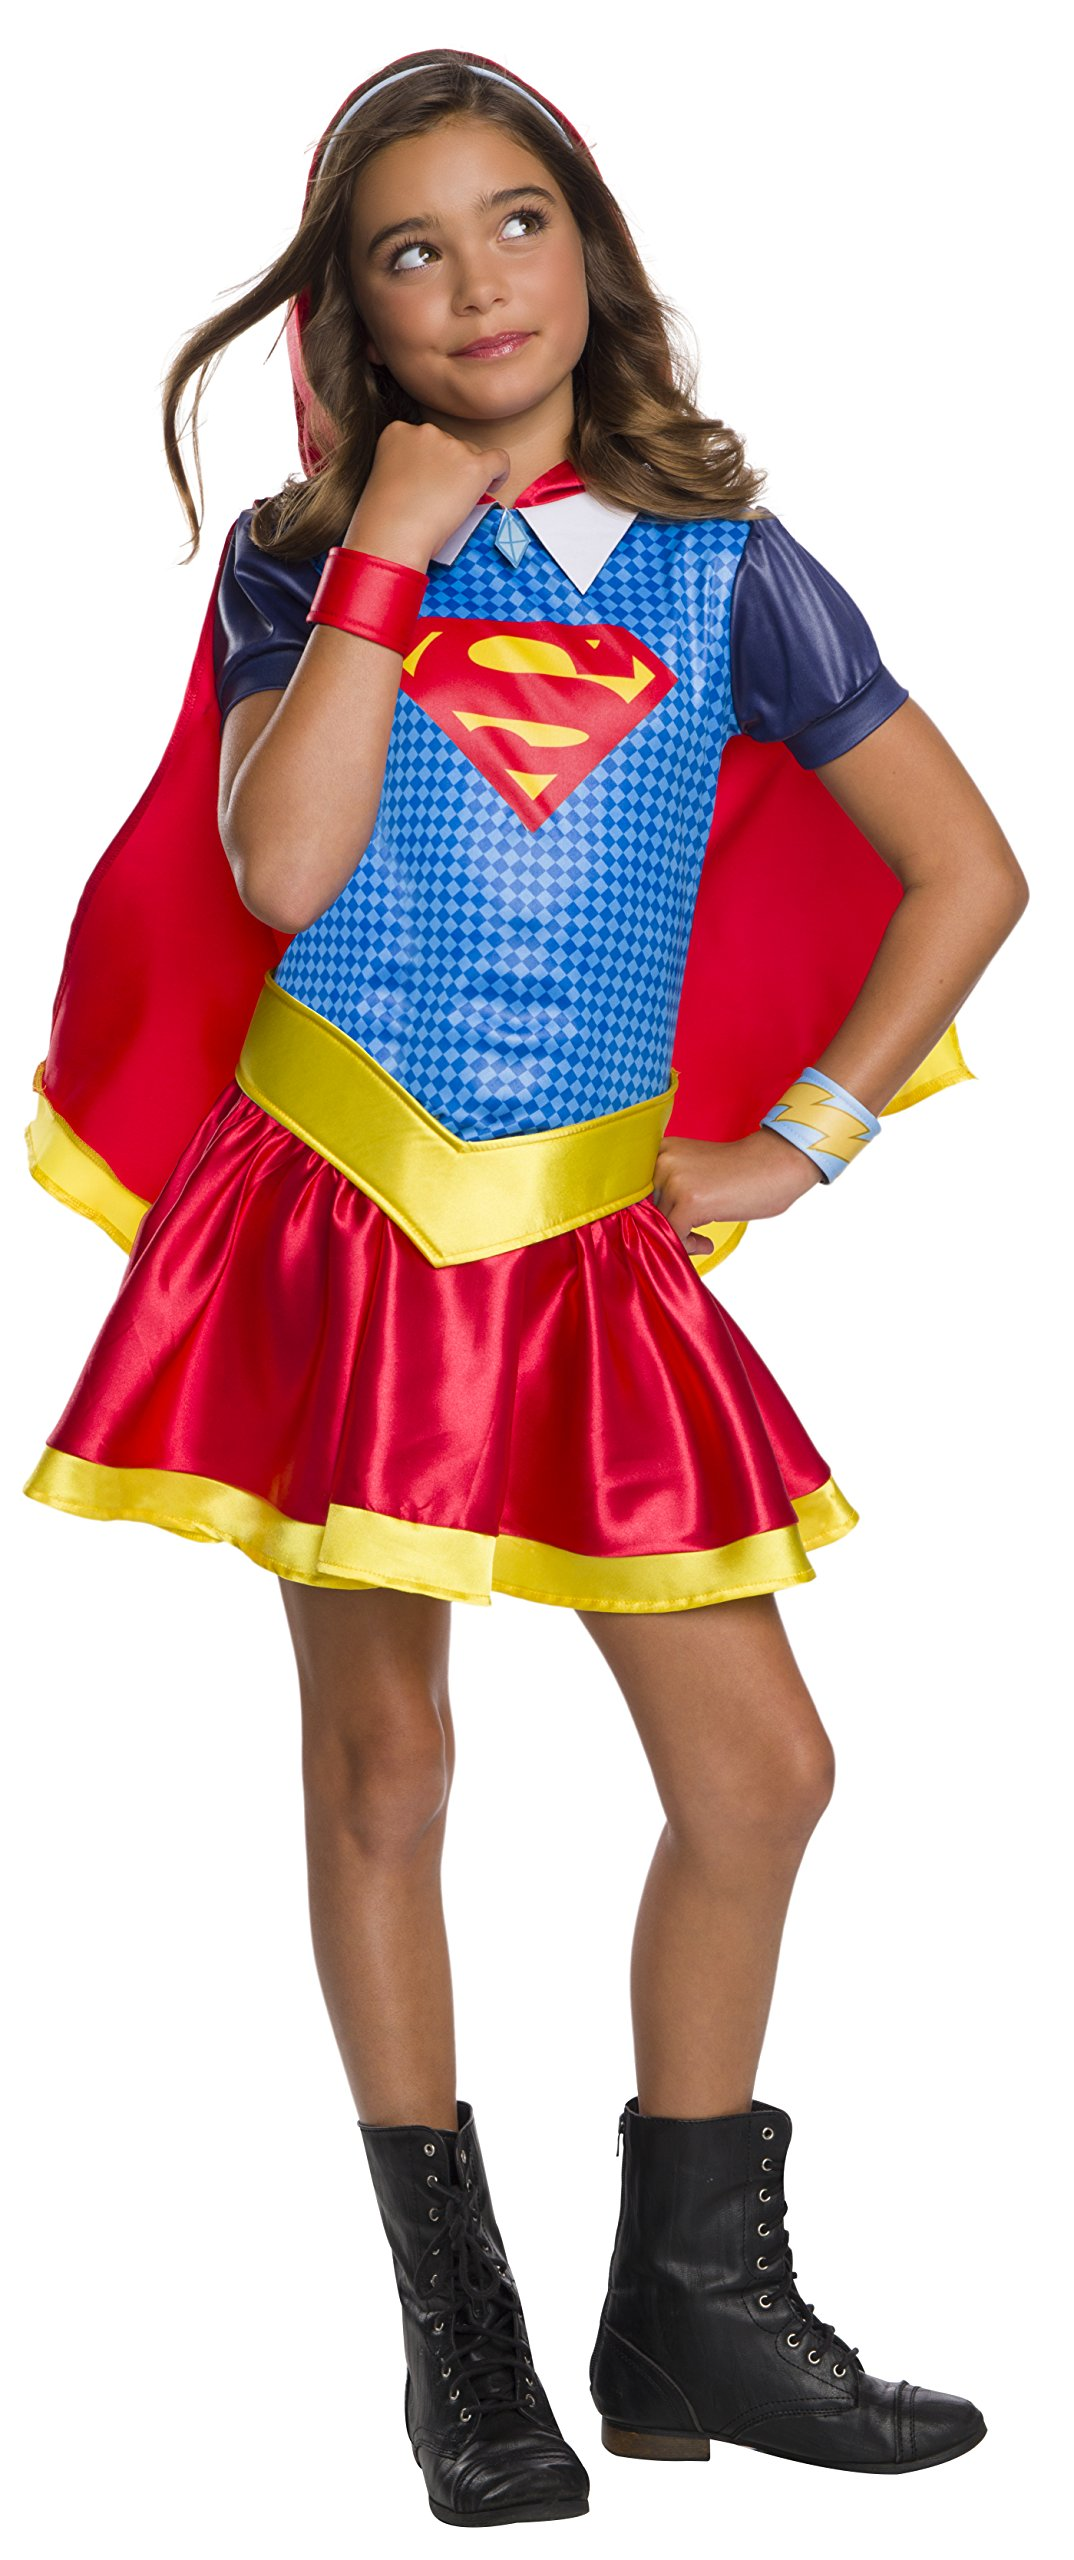 - 81G0HgX 2BgTL - Rubie's DC Super Hero Girls Hoodie Dress Childrens Costume, Supergirl, Small